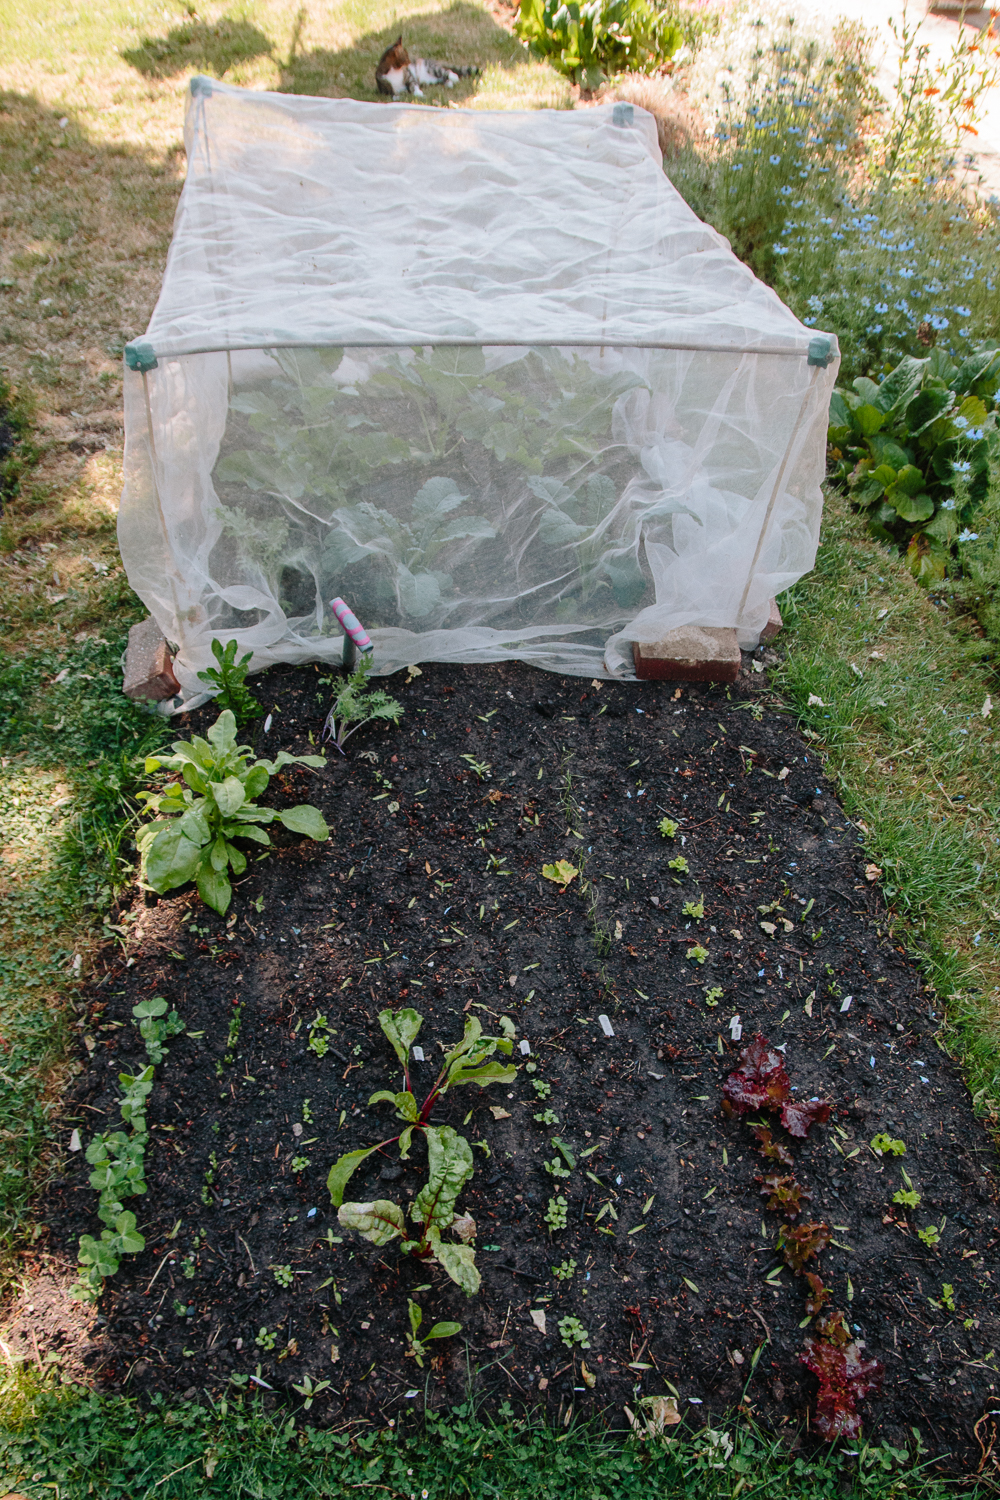 Grow Your Own May 2020 Garden